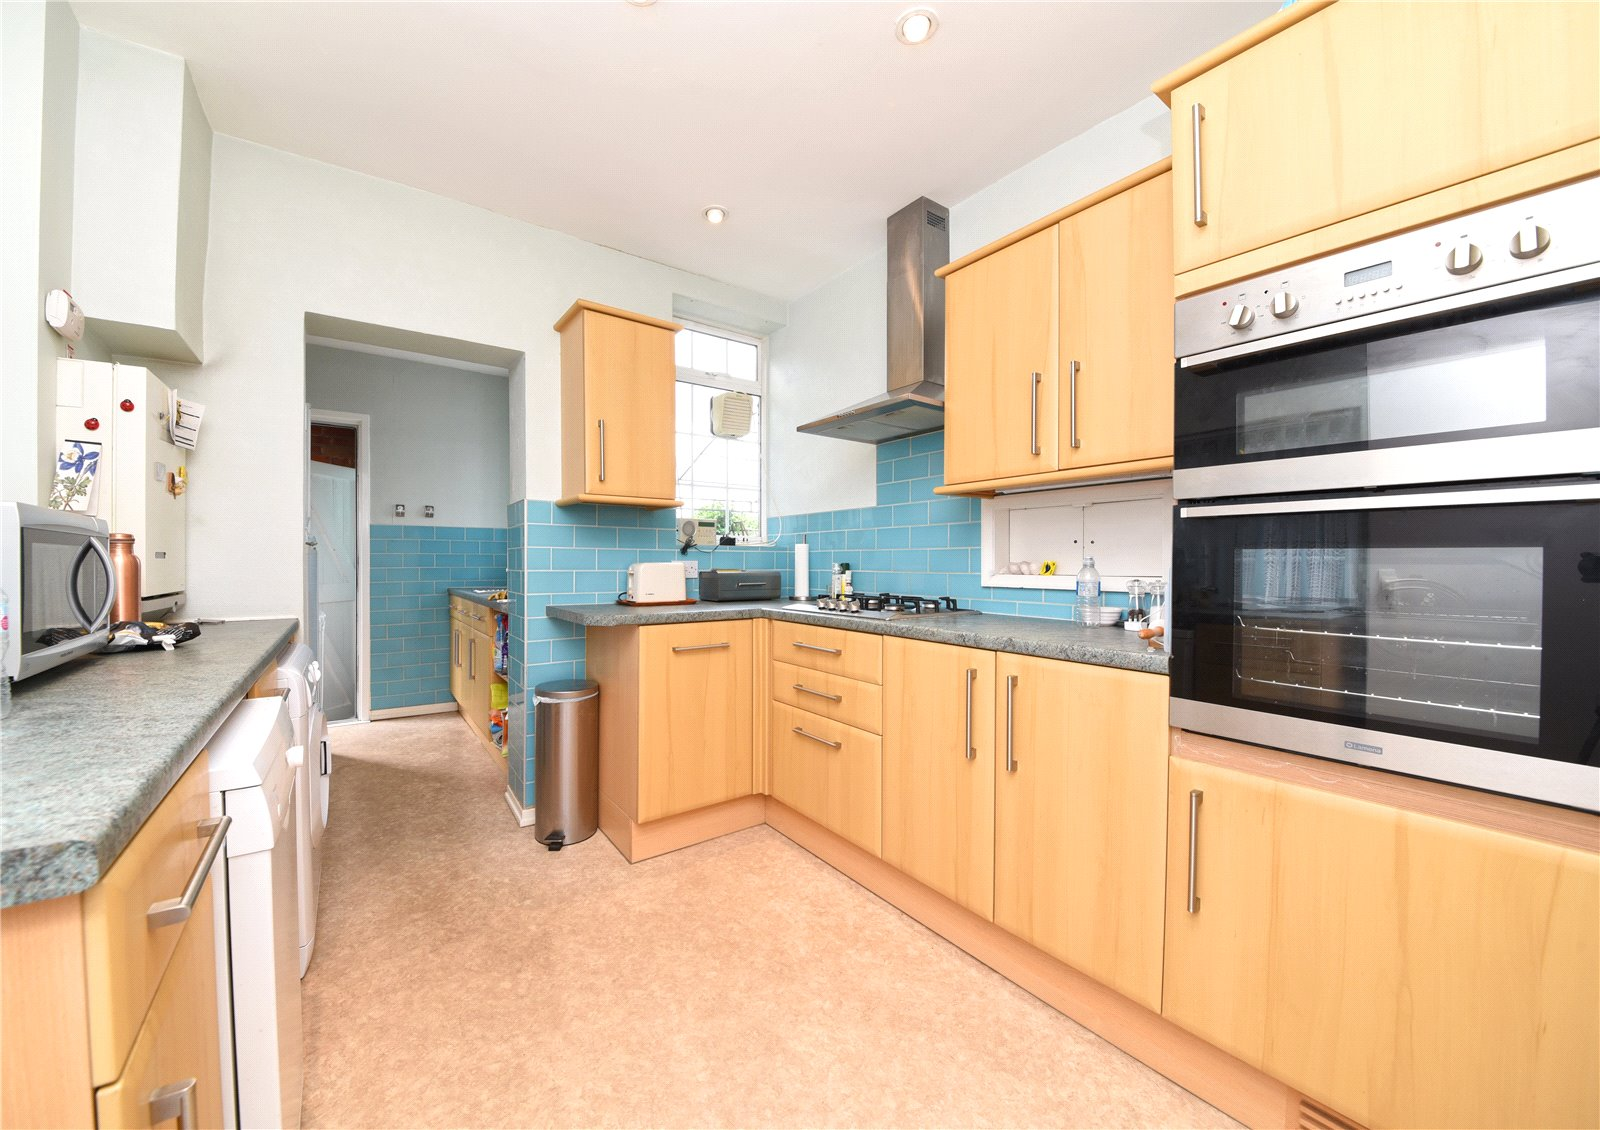 3 bed house for sale in London, N12 9ND 1